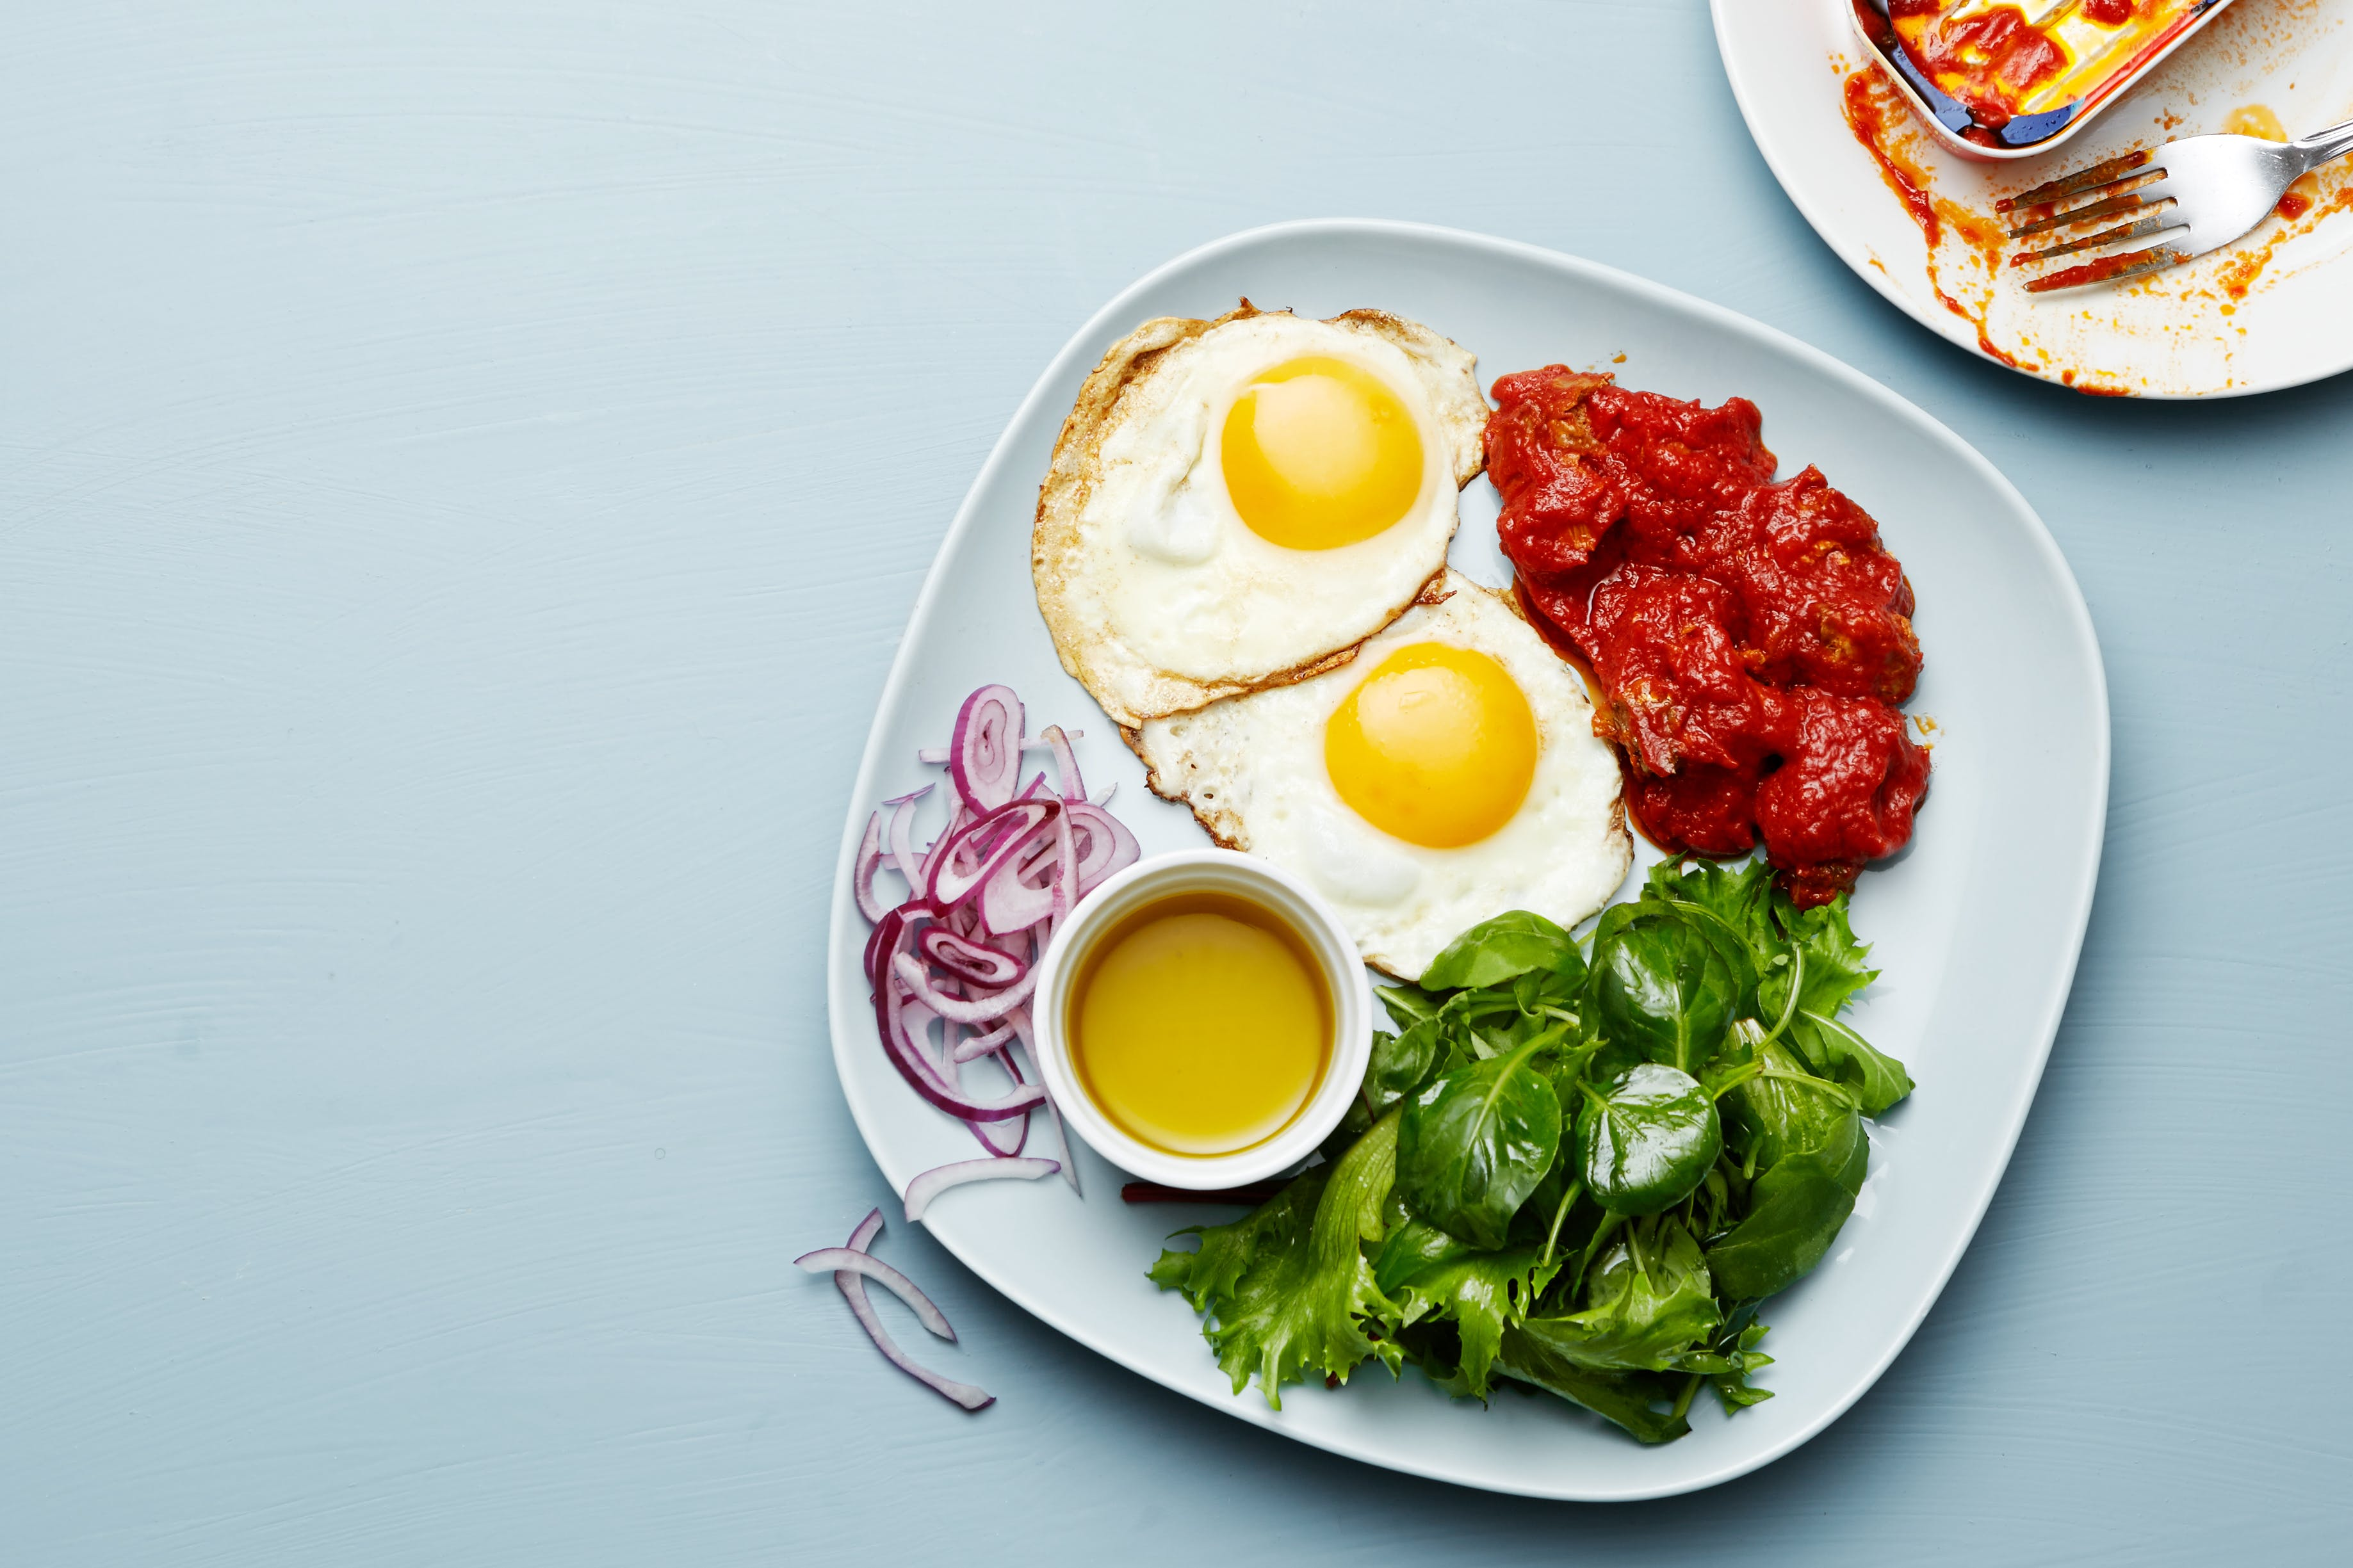 Keto mackerel and egg plate